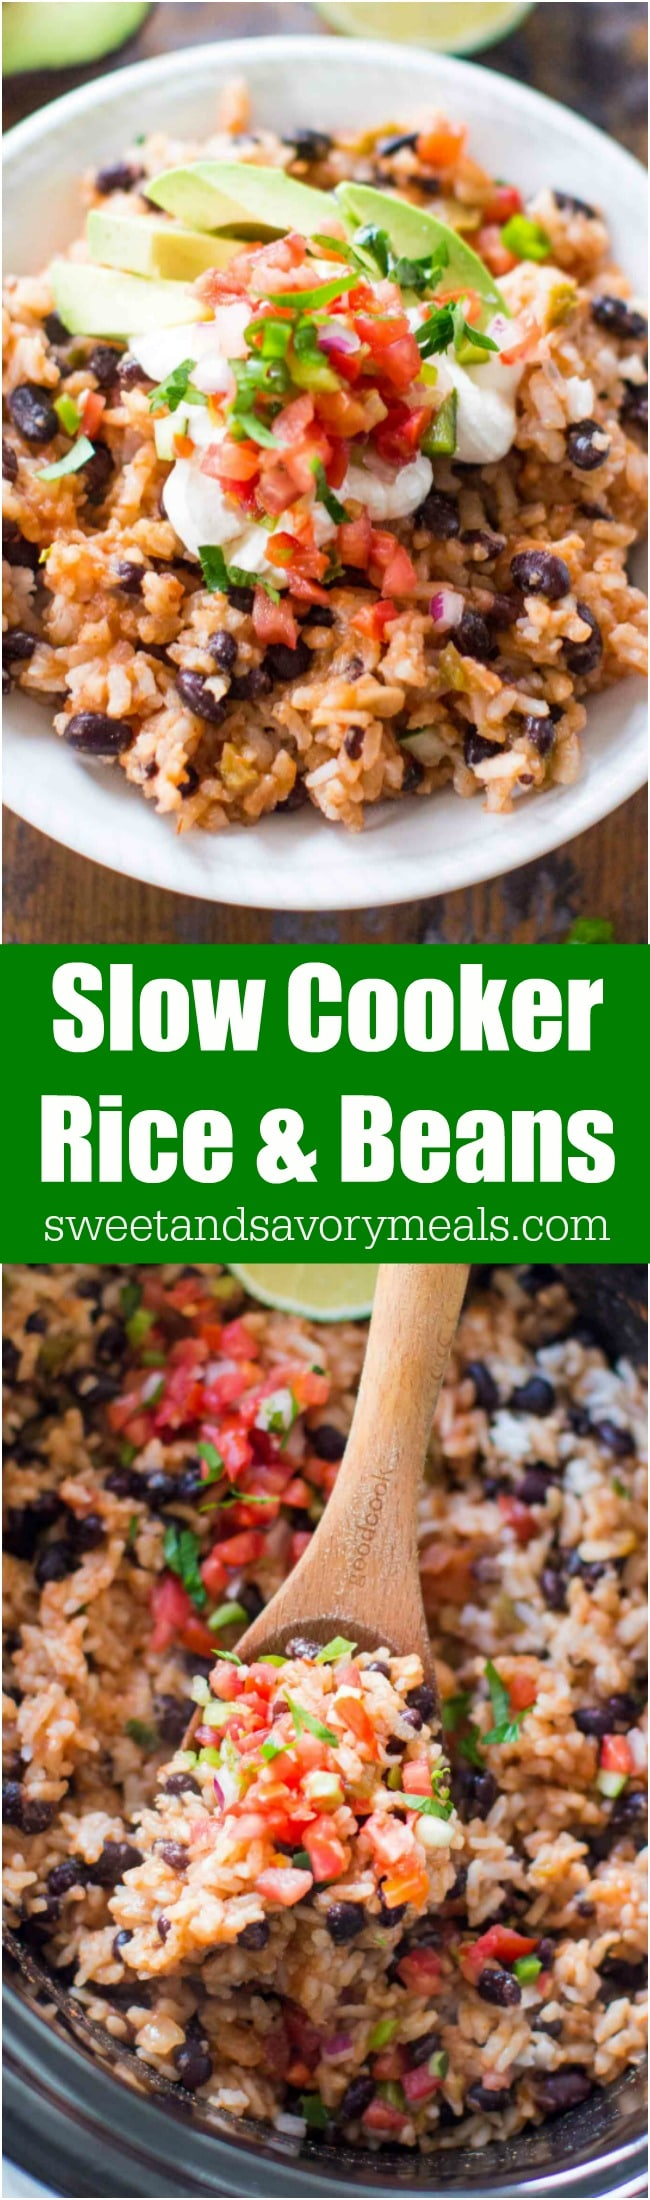 Slow cooker rice and beans photo.